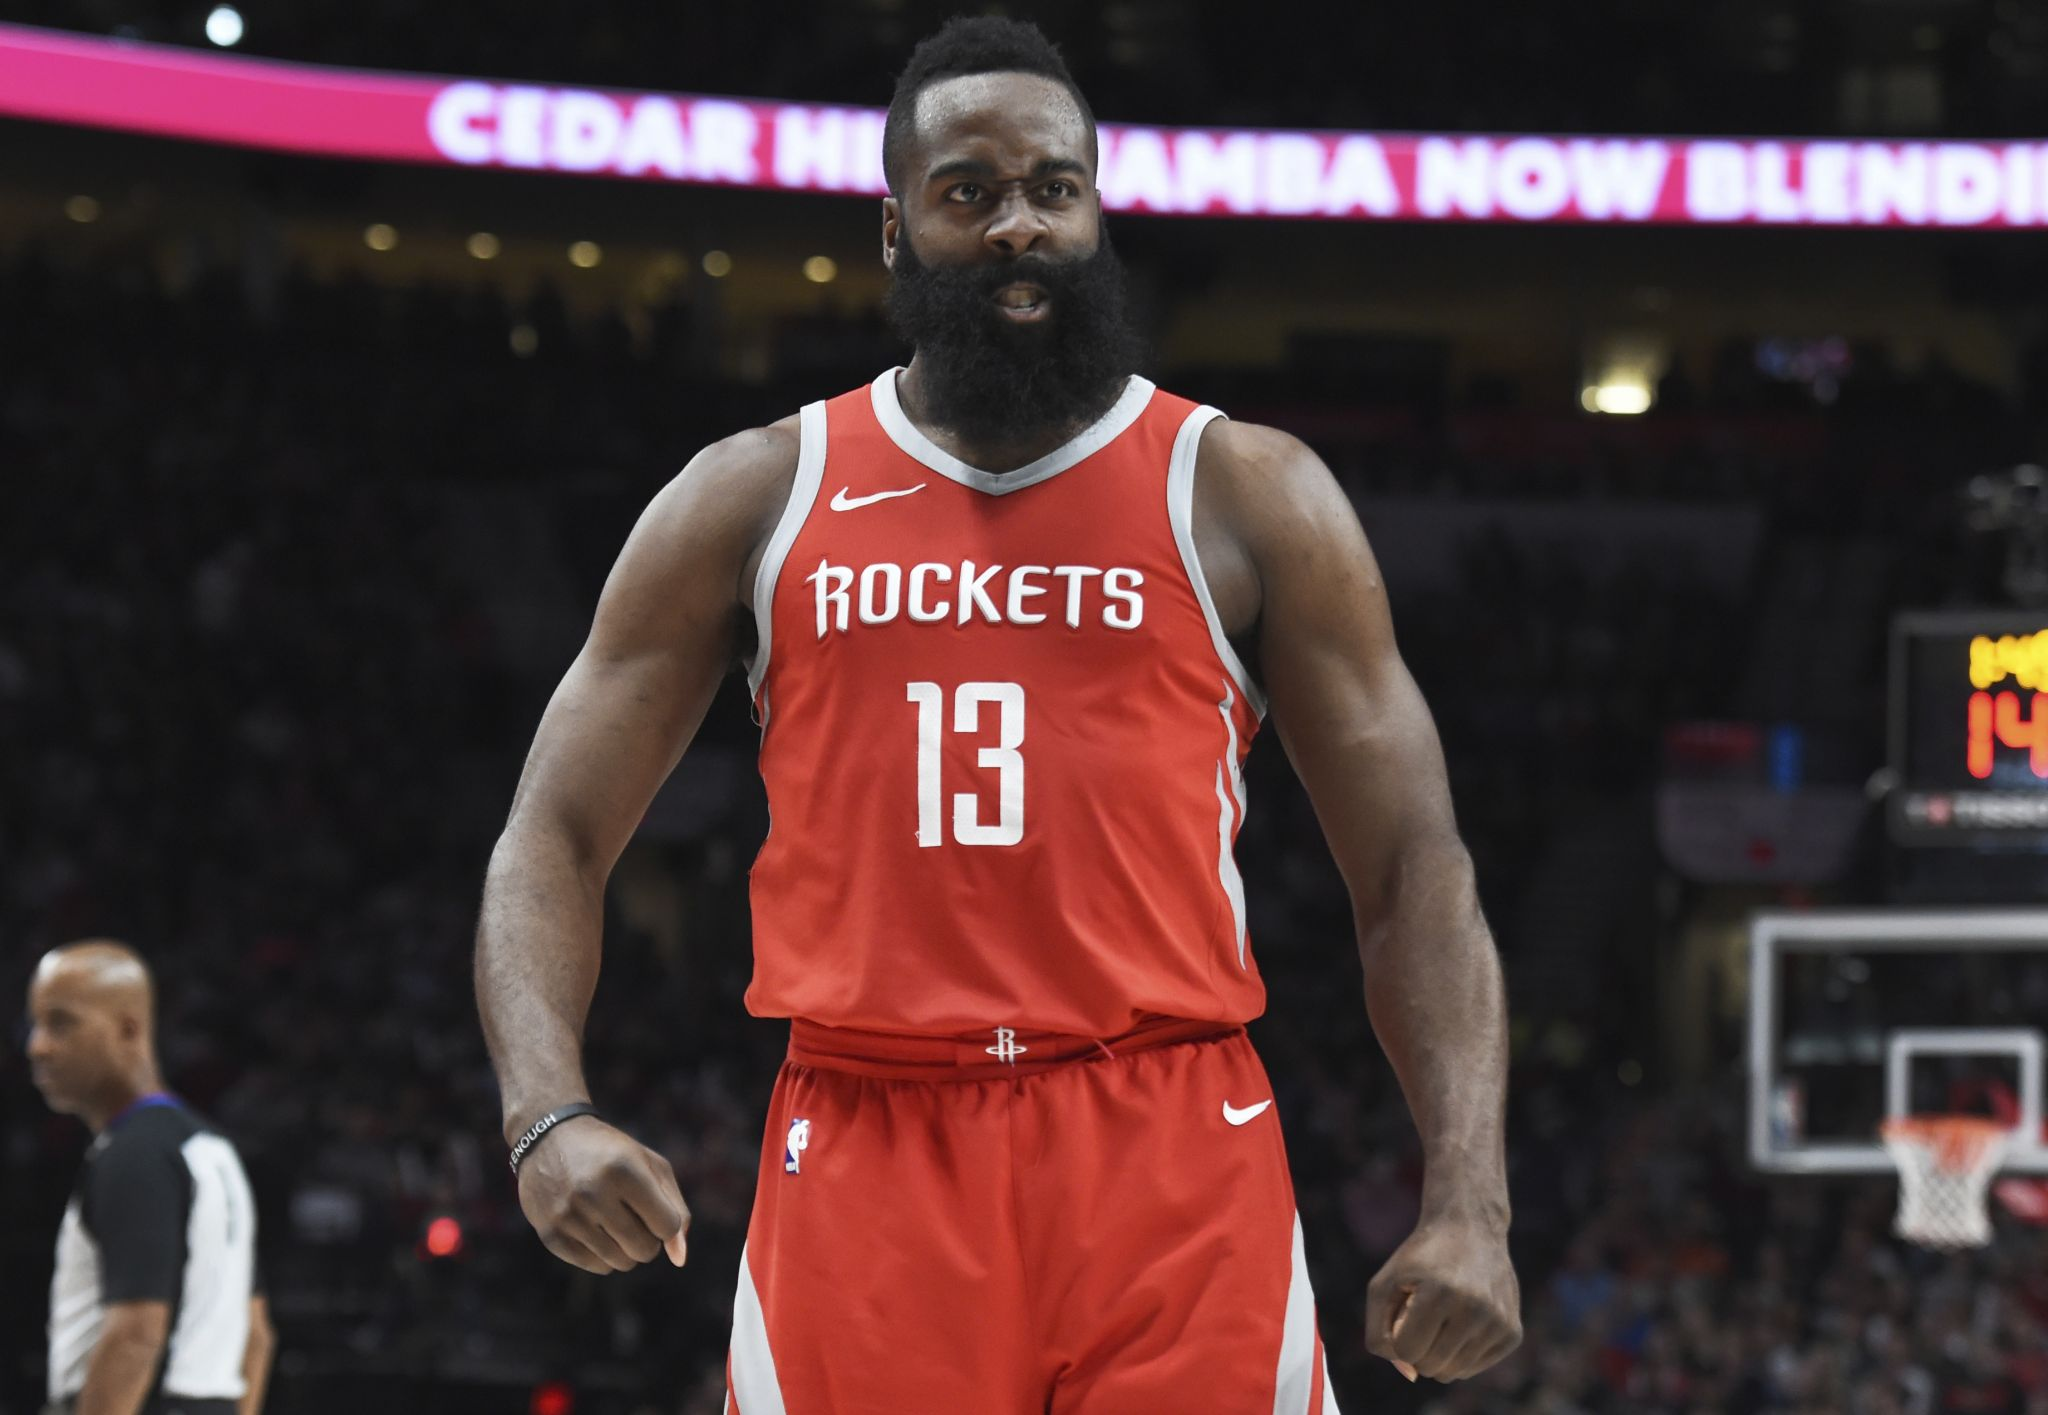 3-pointers  Takeaways from the Rockets  win against the Trail Blazers -  HoustonChronicle.com e57a49a7e